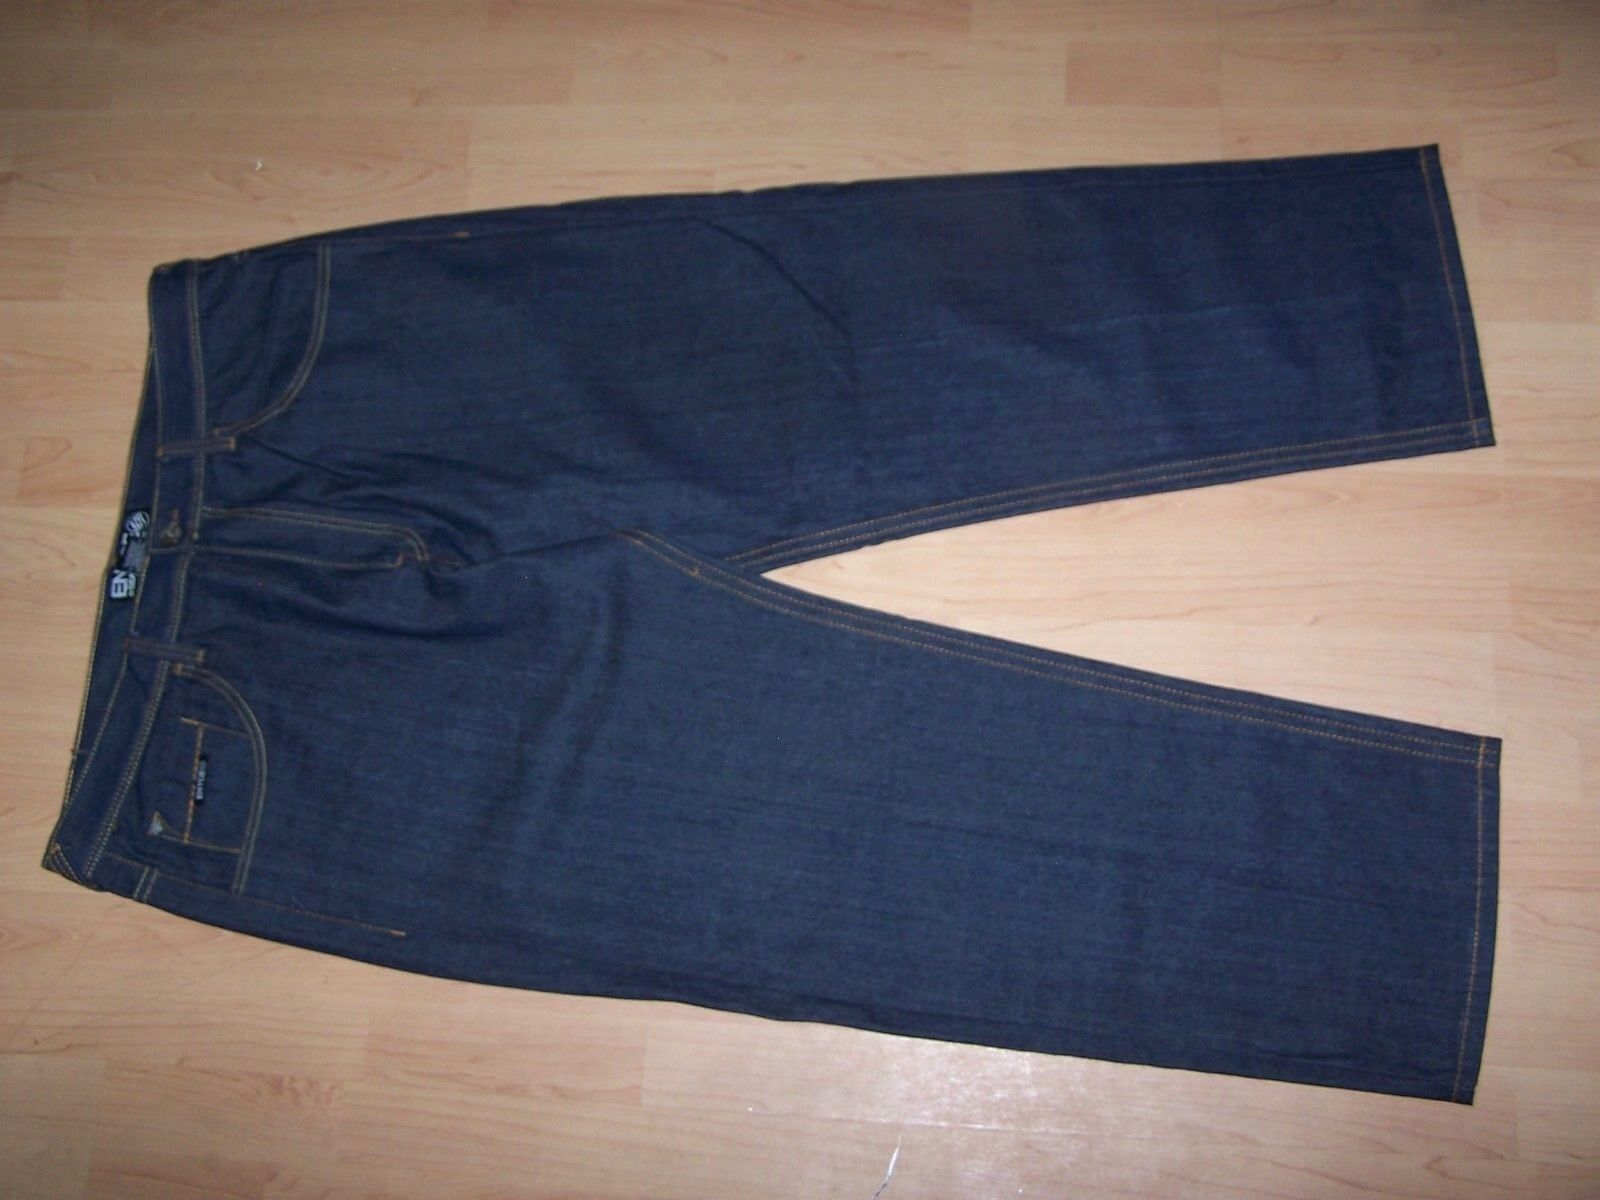 ENYCE & SEAN COMBS Mens Denim bluee Jeans Size 44 (42.5W x 30 3 4L) NWOT